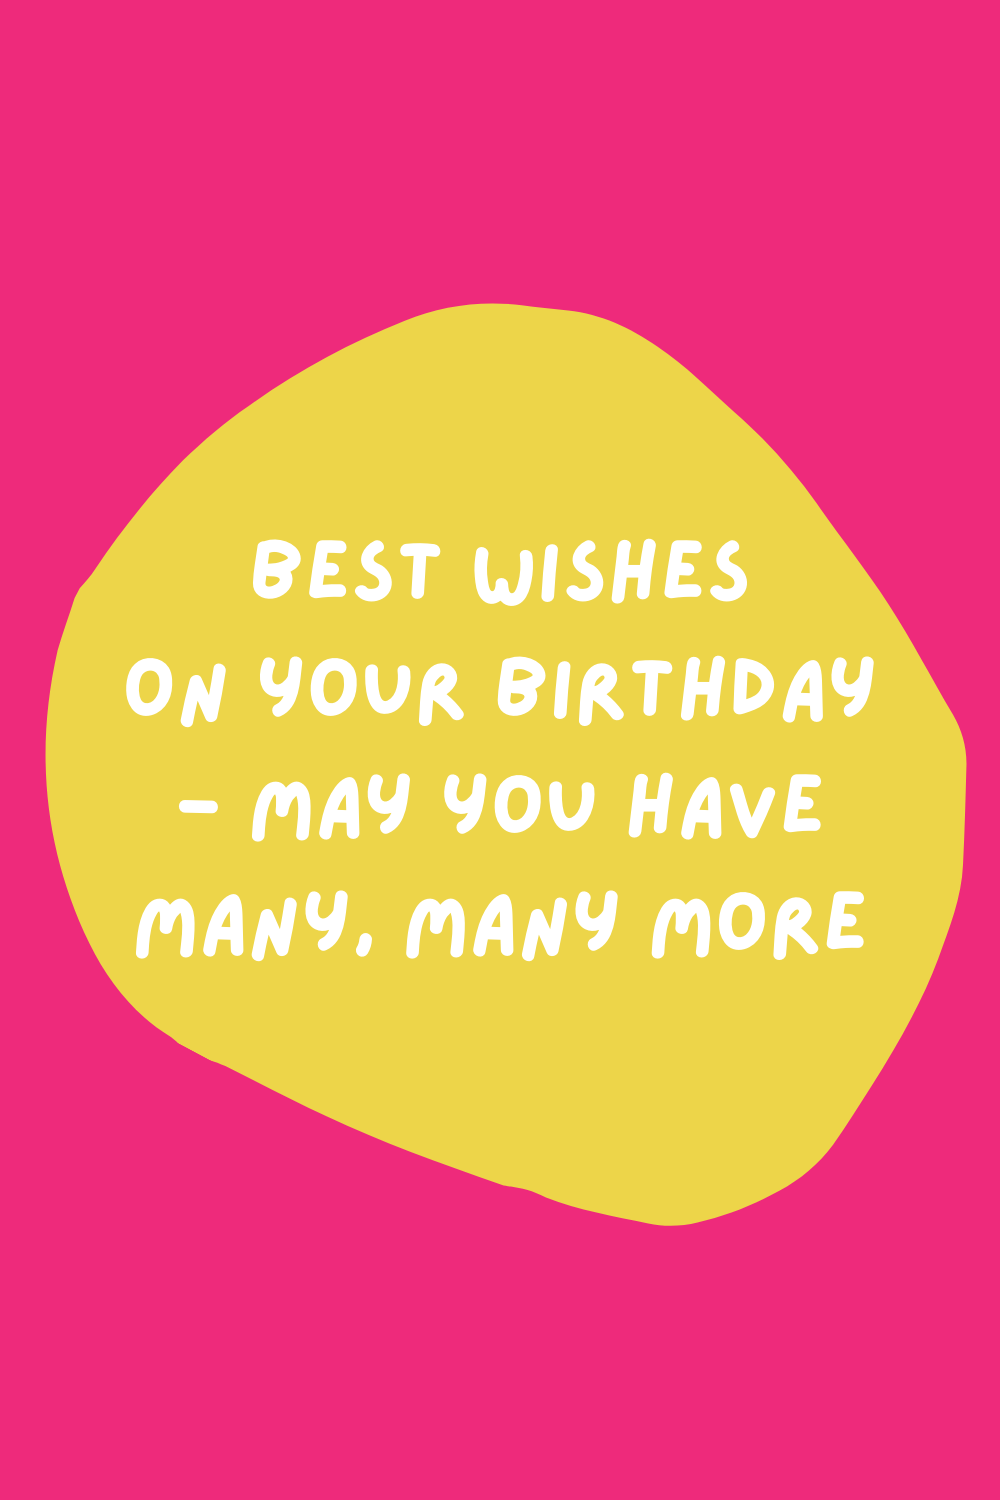 Celebration Messages For Birthday Sadness